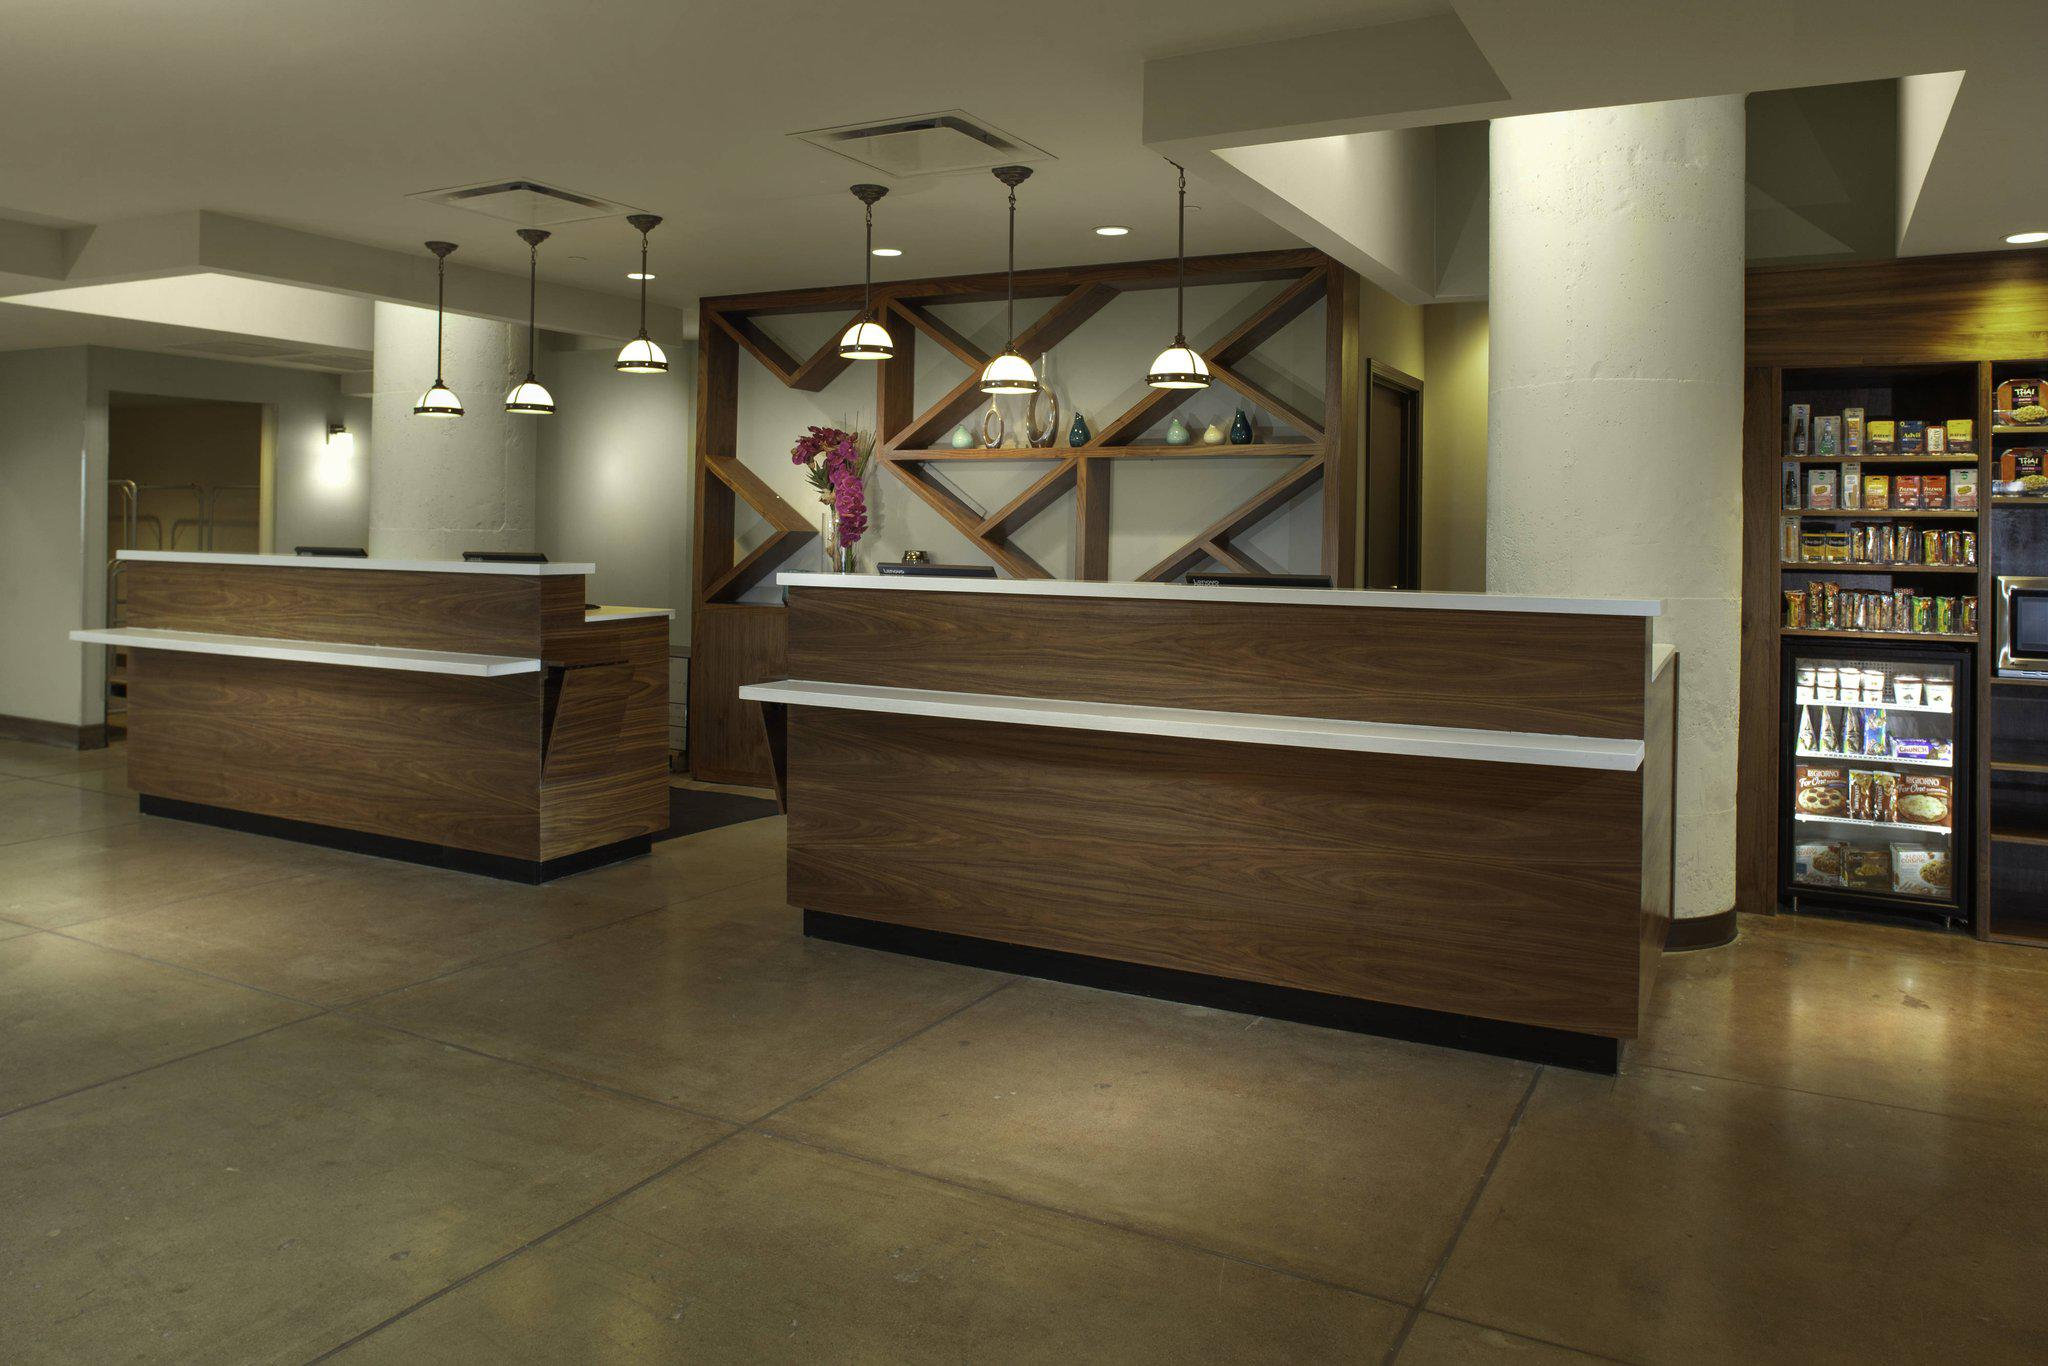 TownePlace Suites by Marriott Dallas Downtown